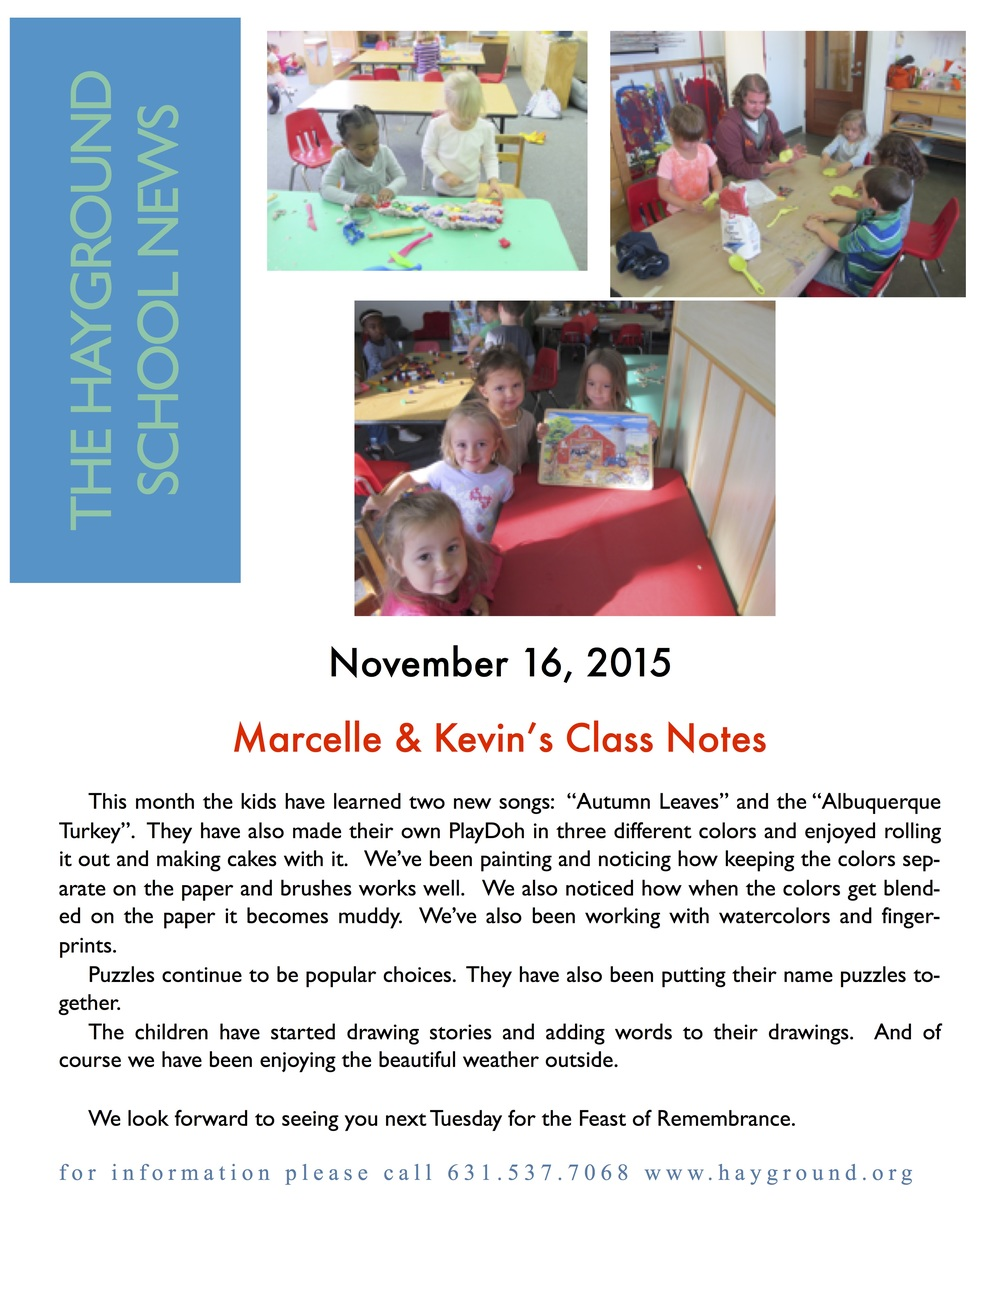 M & K's Class Notes 11-16-15 copy.jpg